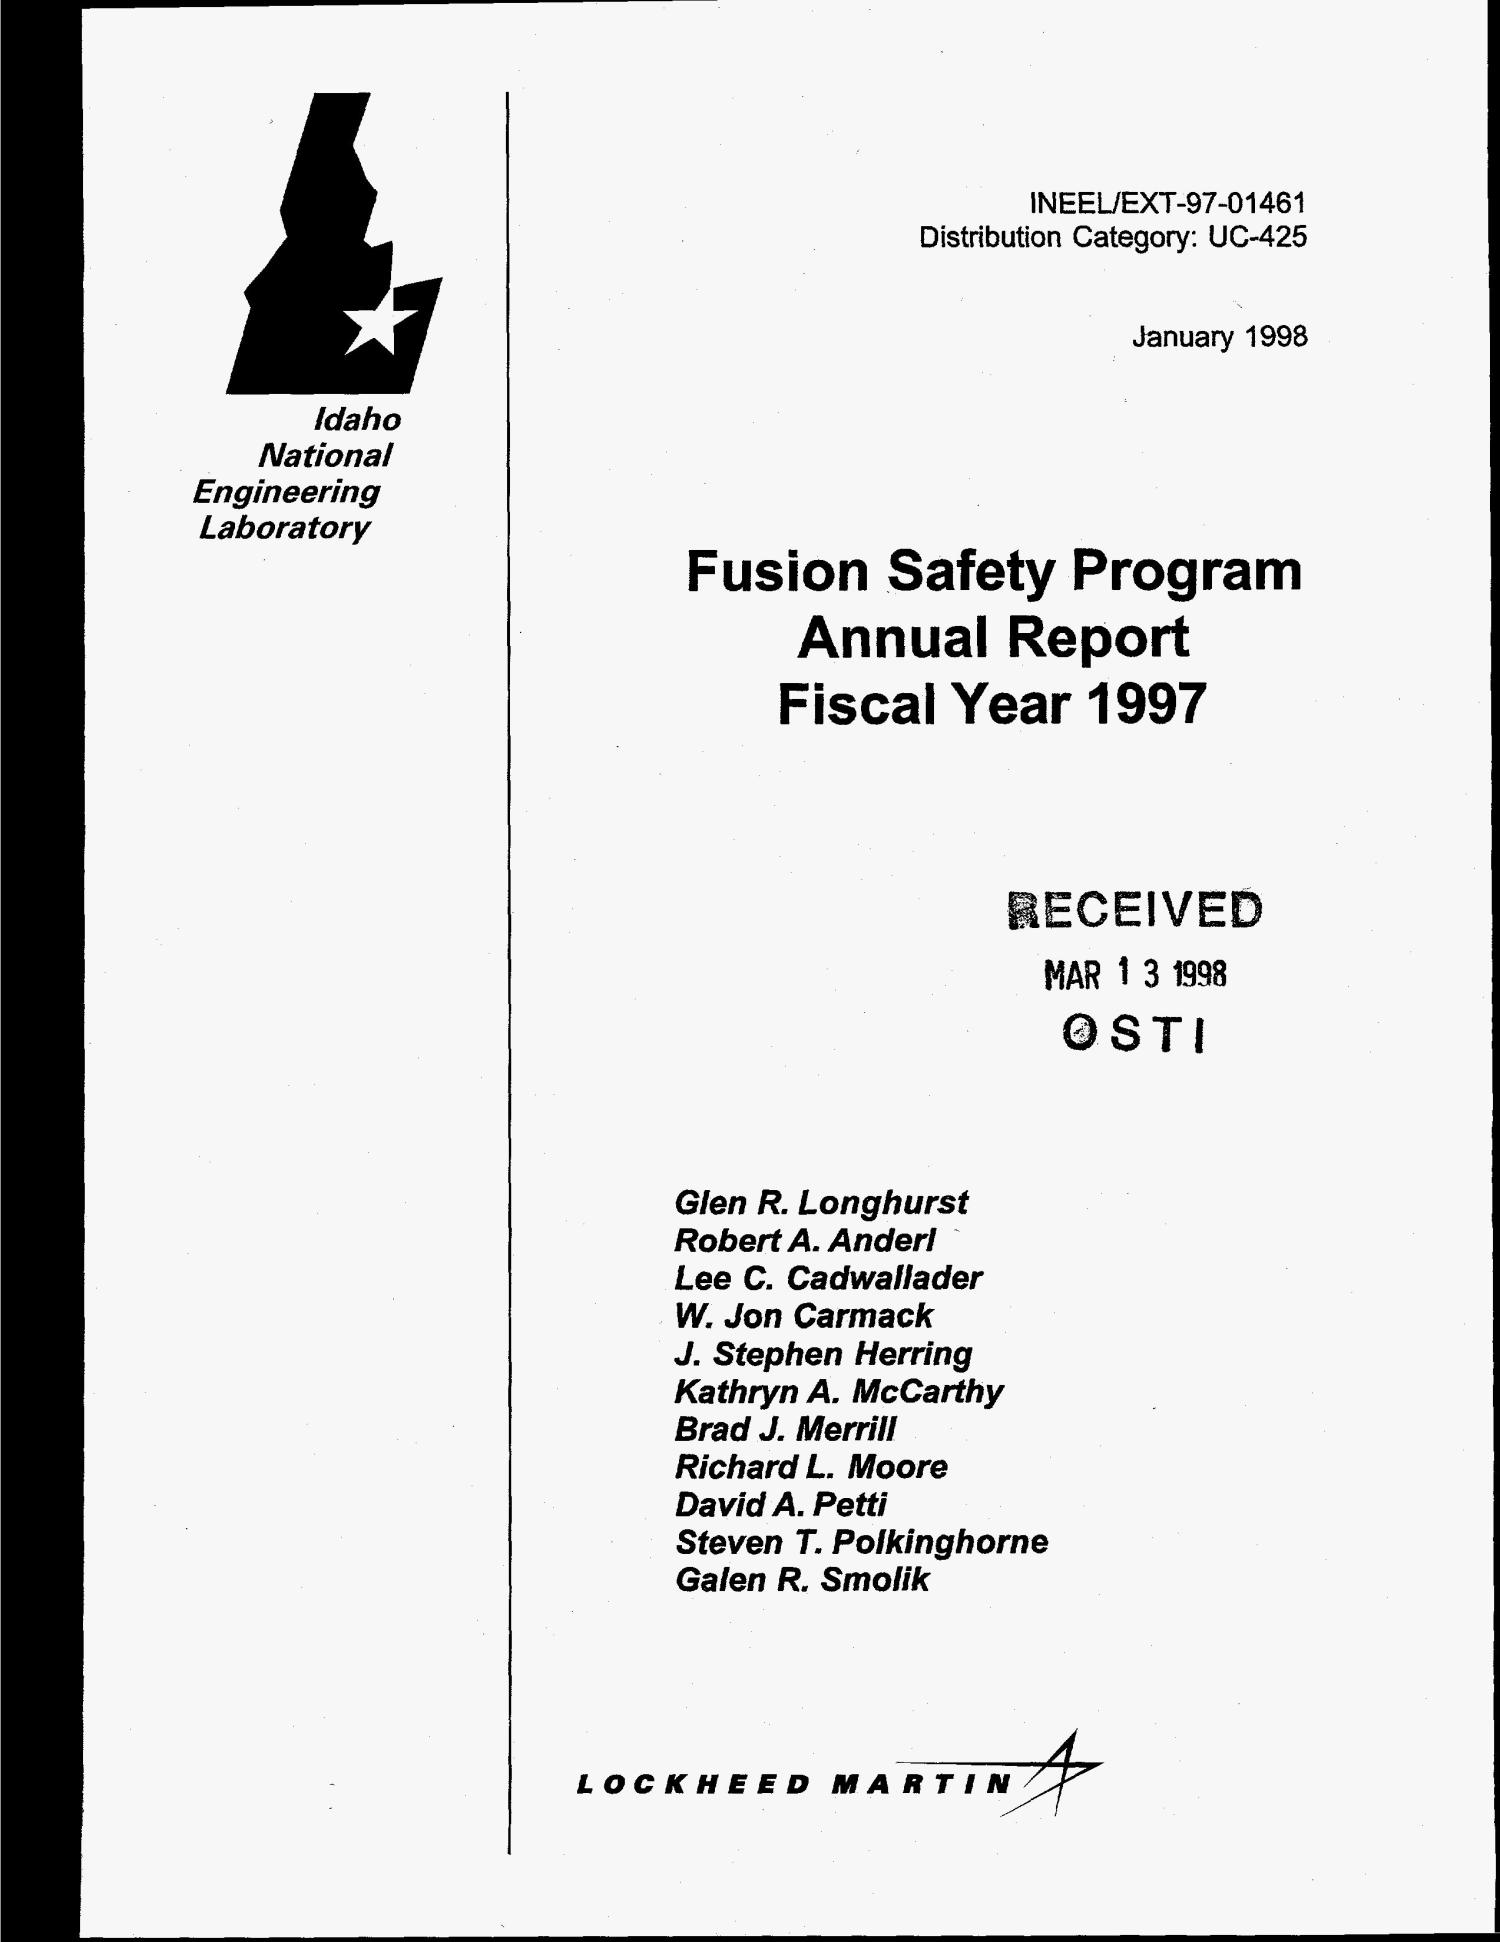 Fusion safety program annual report fiscal year 1997                                                                                                      [Sequence #]: 1 of 70